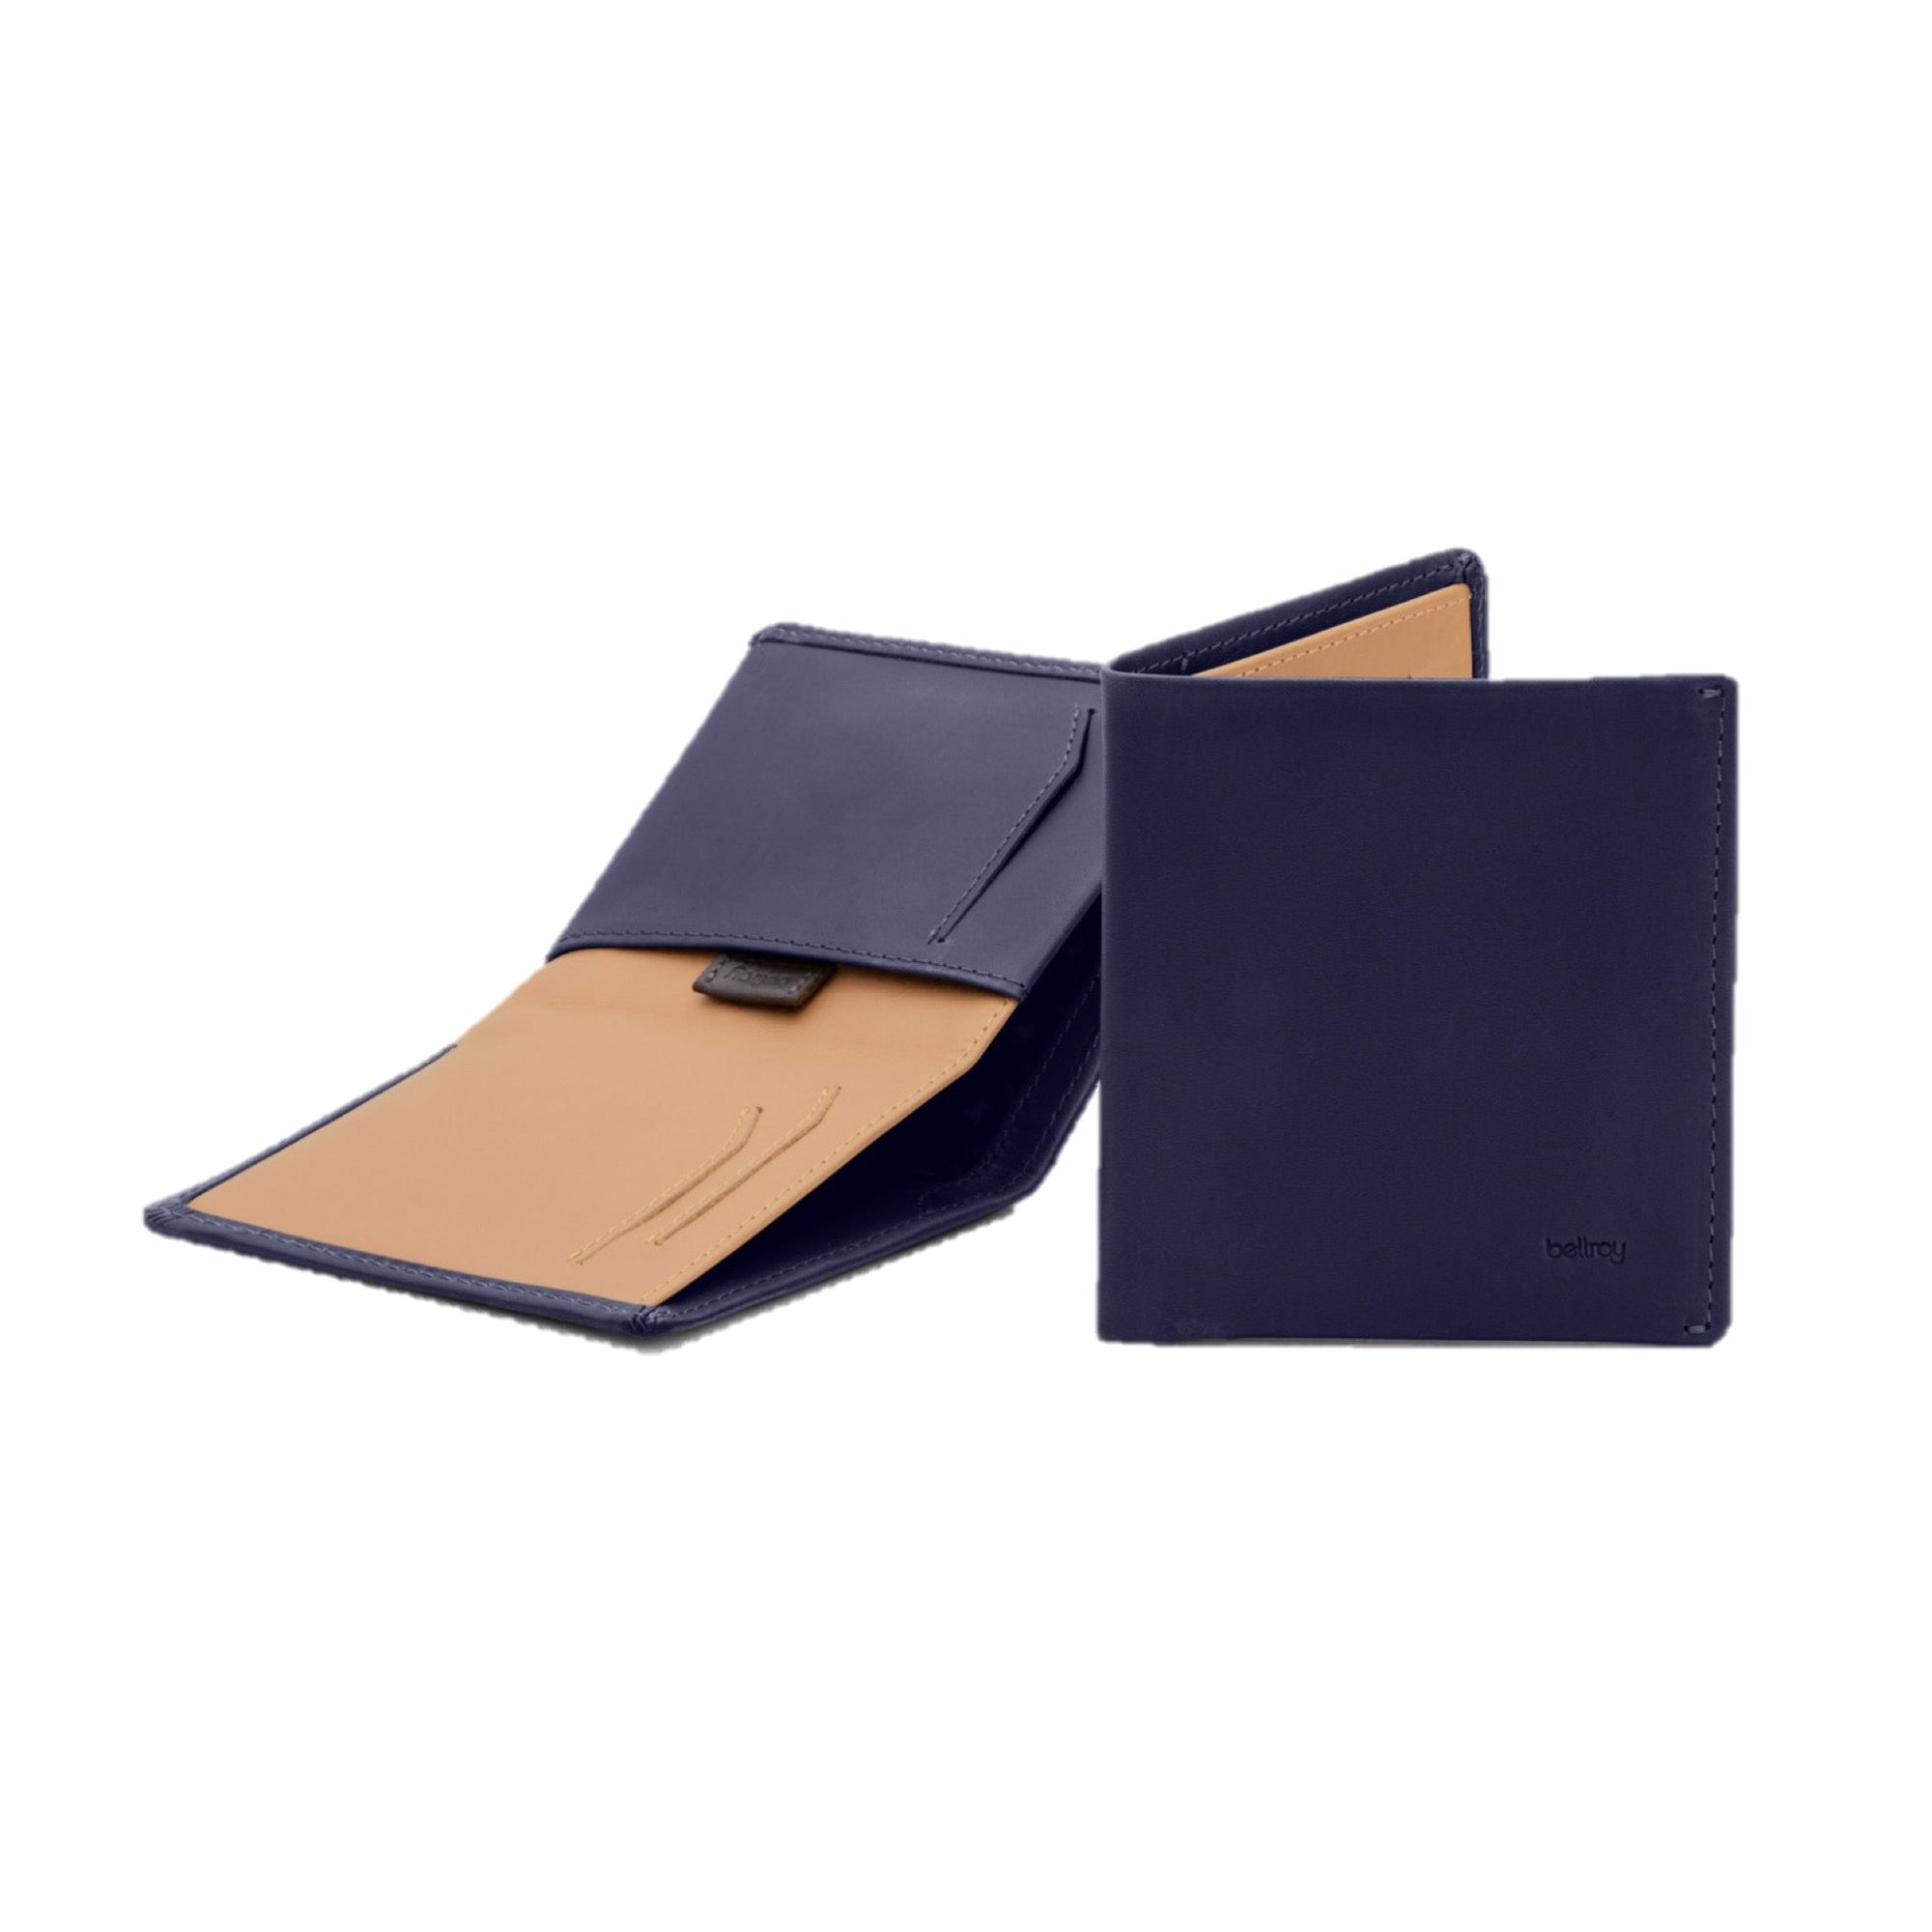 8cd1bb2924 Bellroy Note Sleeve